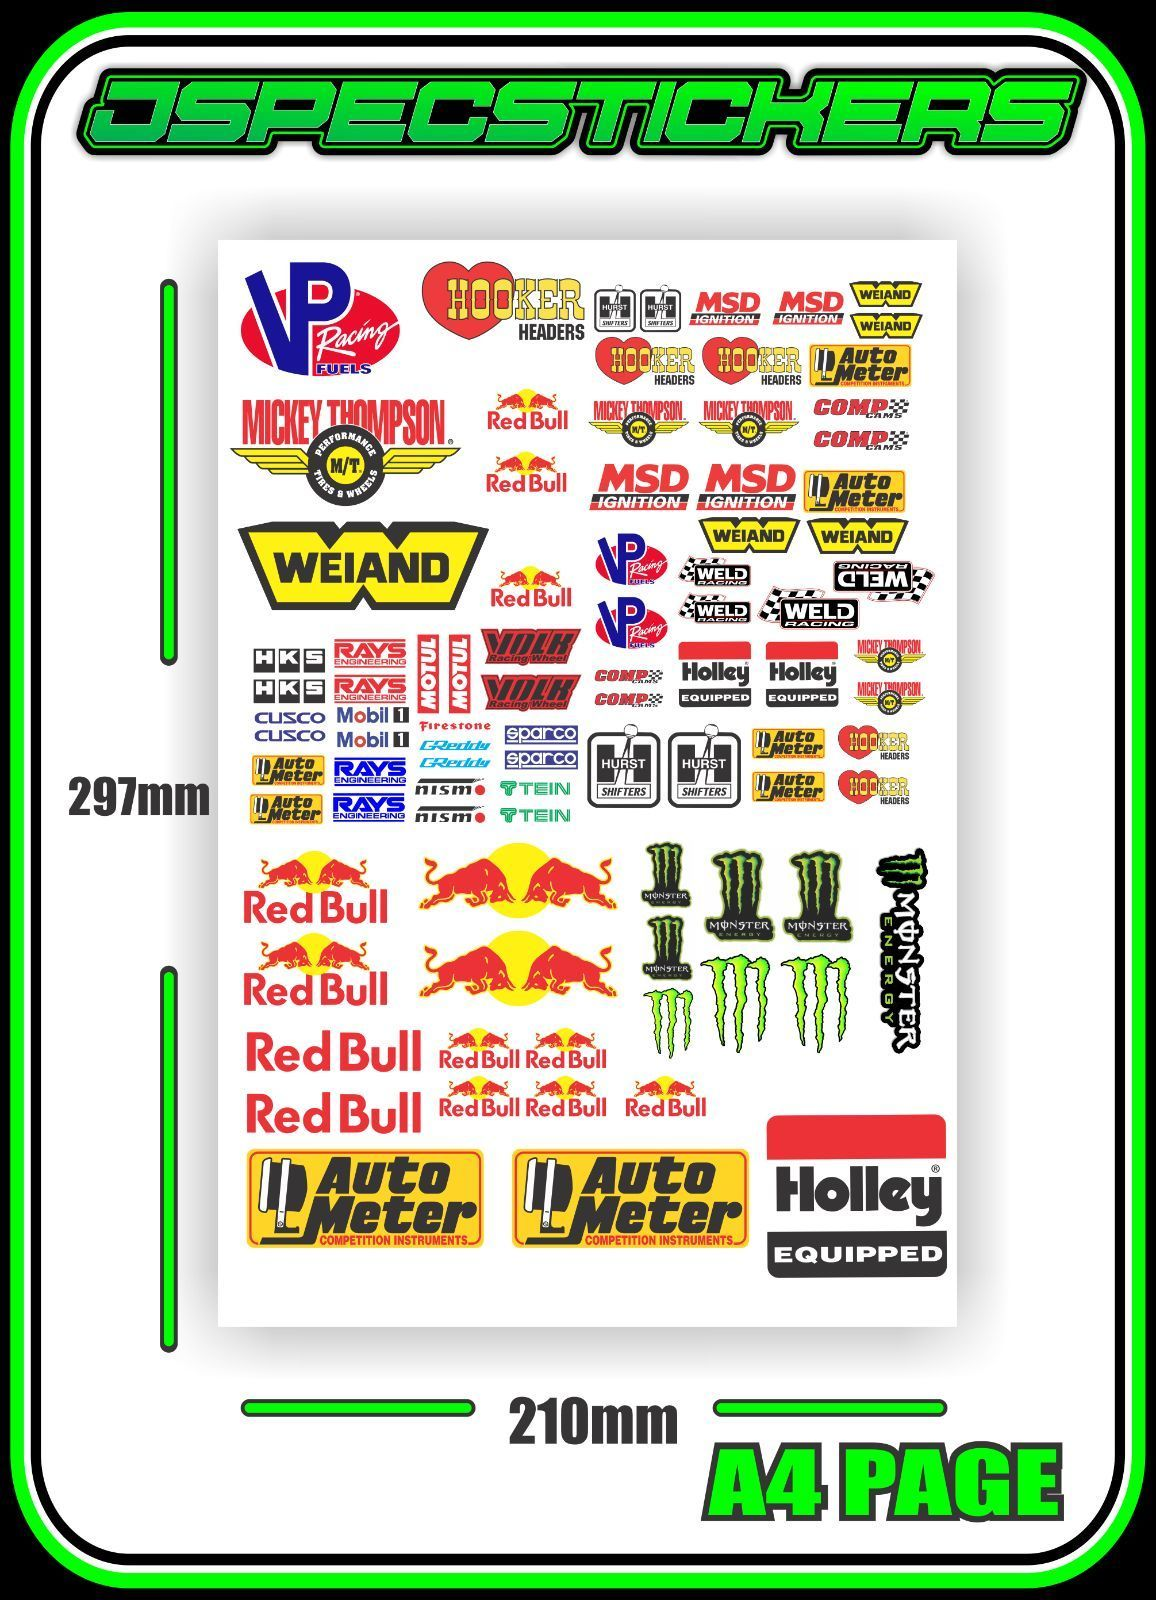 11 1 aud jdm slot car sticker sheet scalextric plafit 1 18 1 24